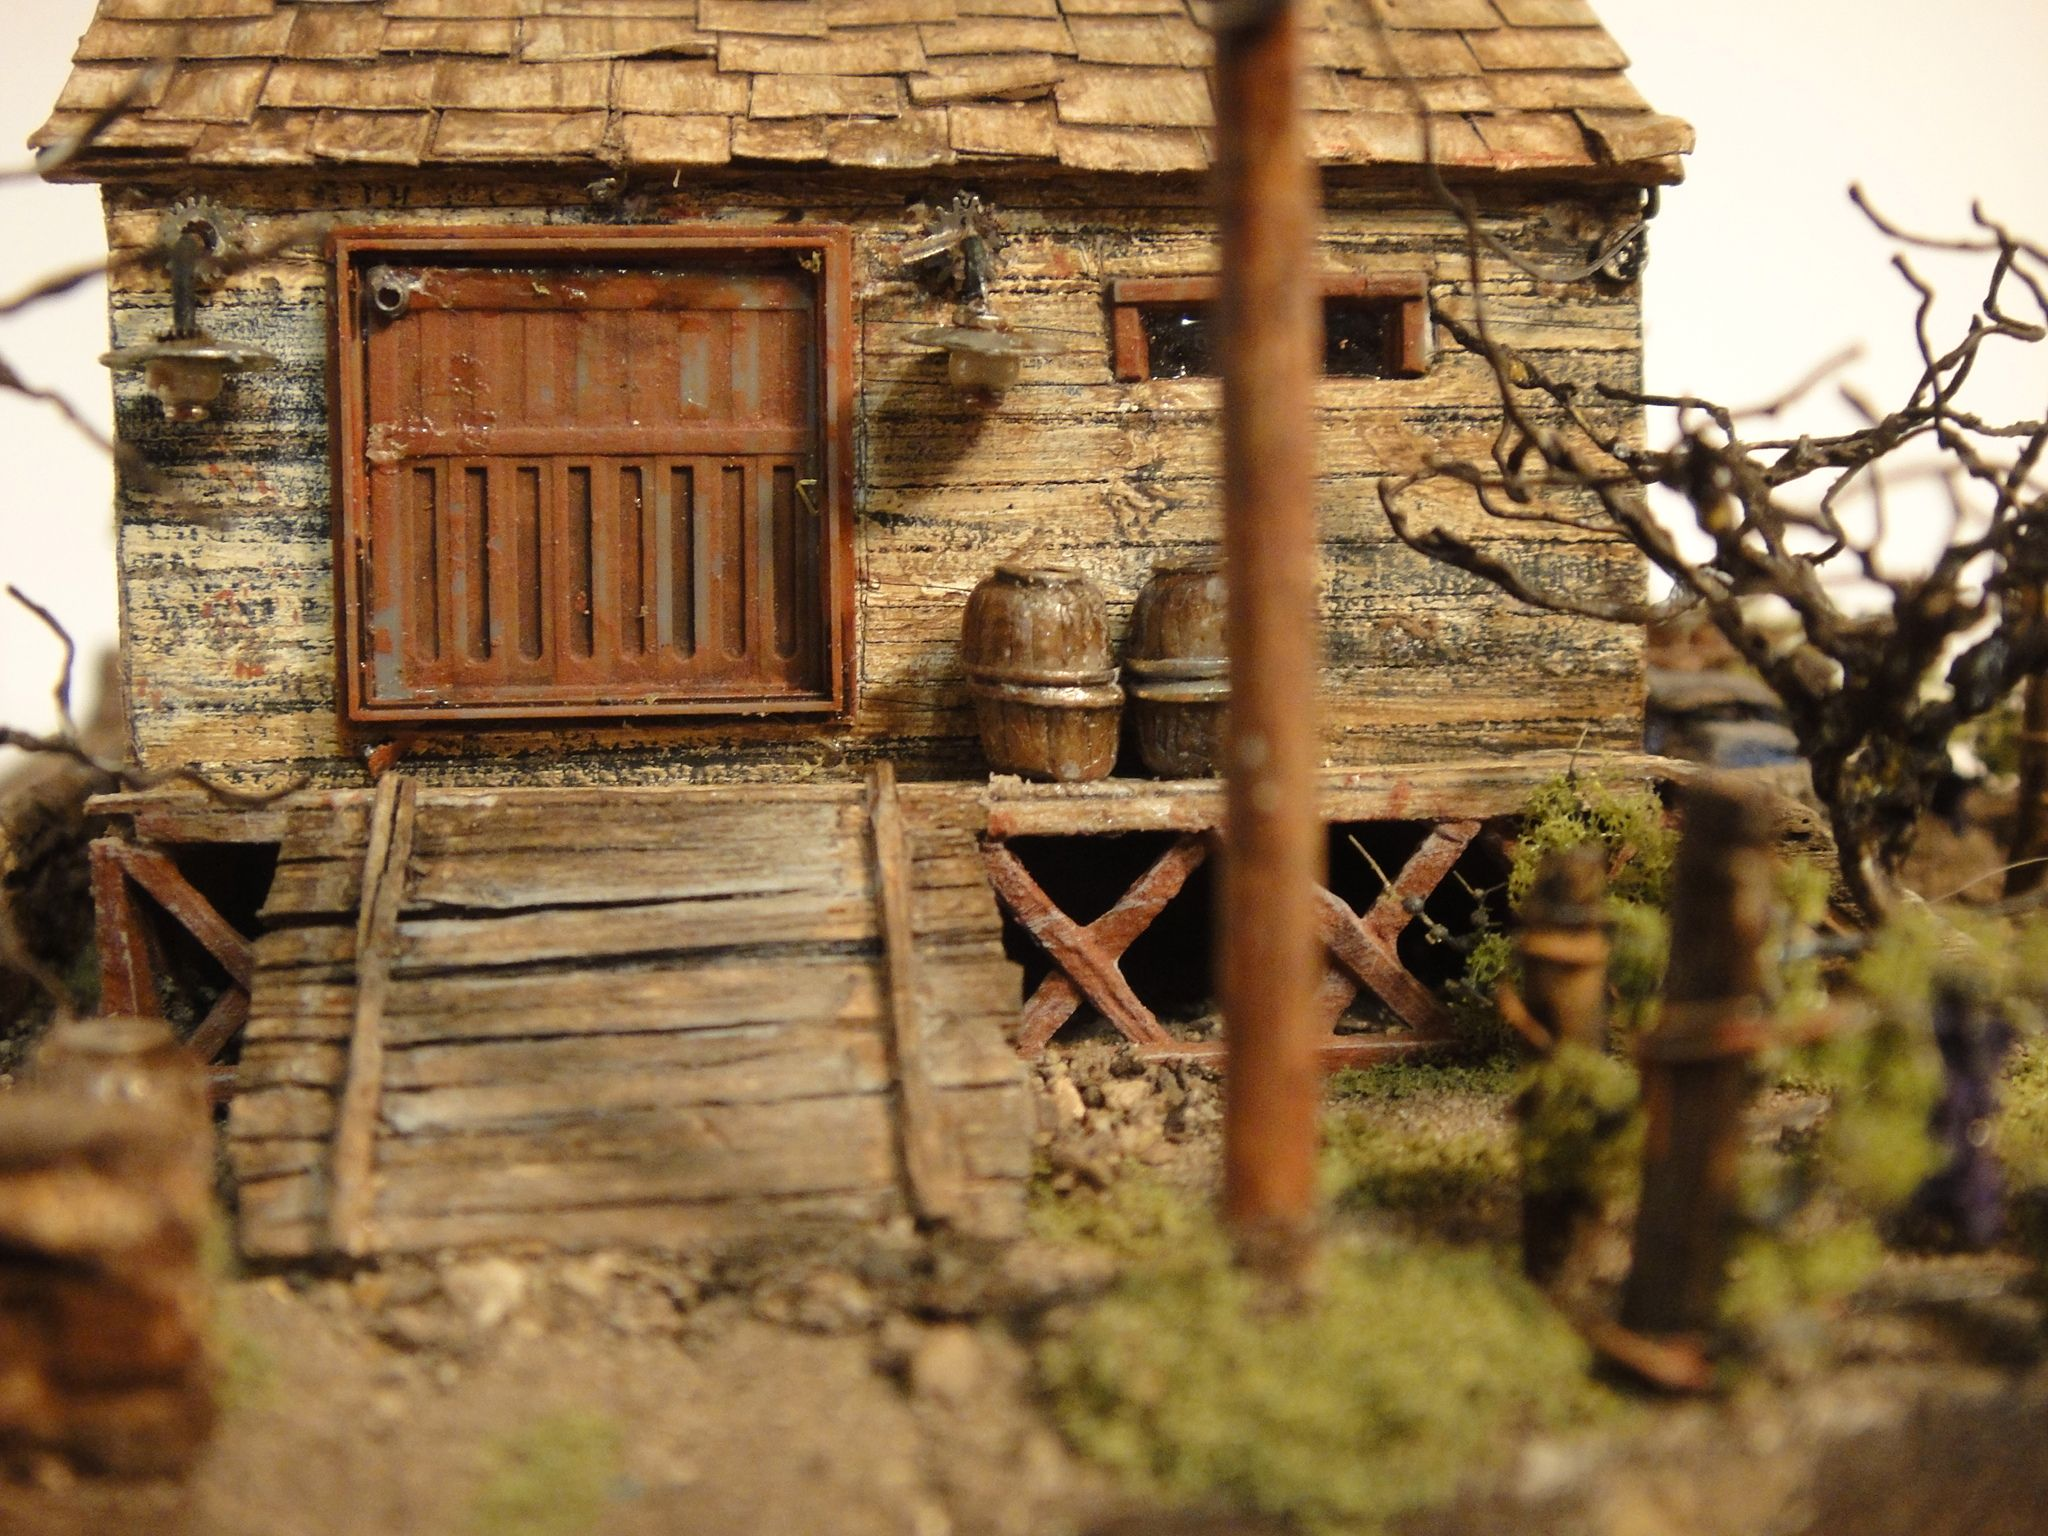 Z Scale Miniature Building Mere Inches In Height With Extreme